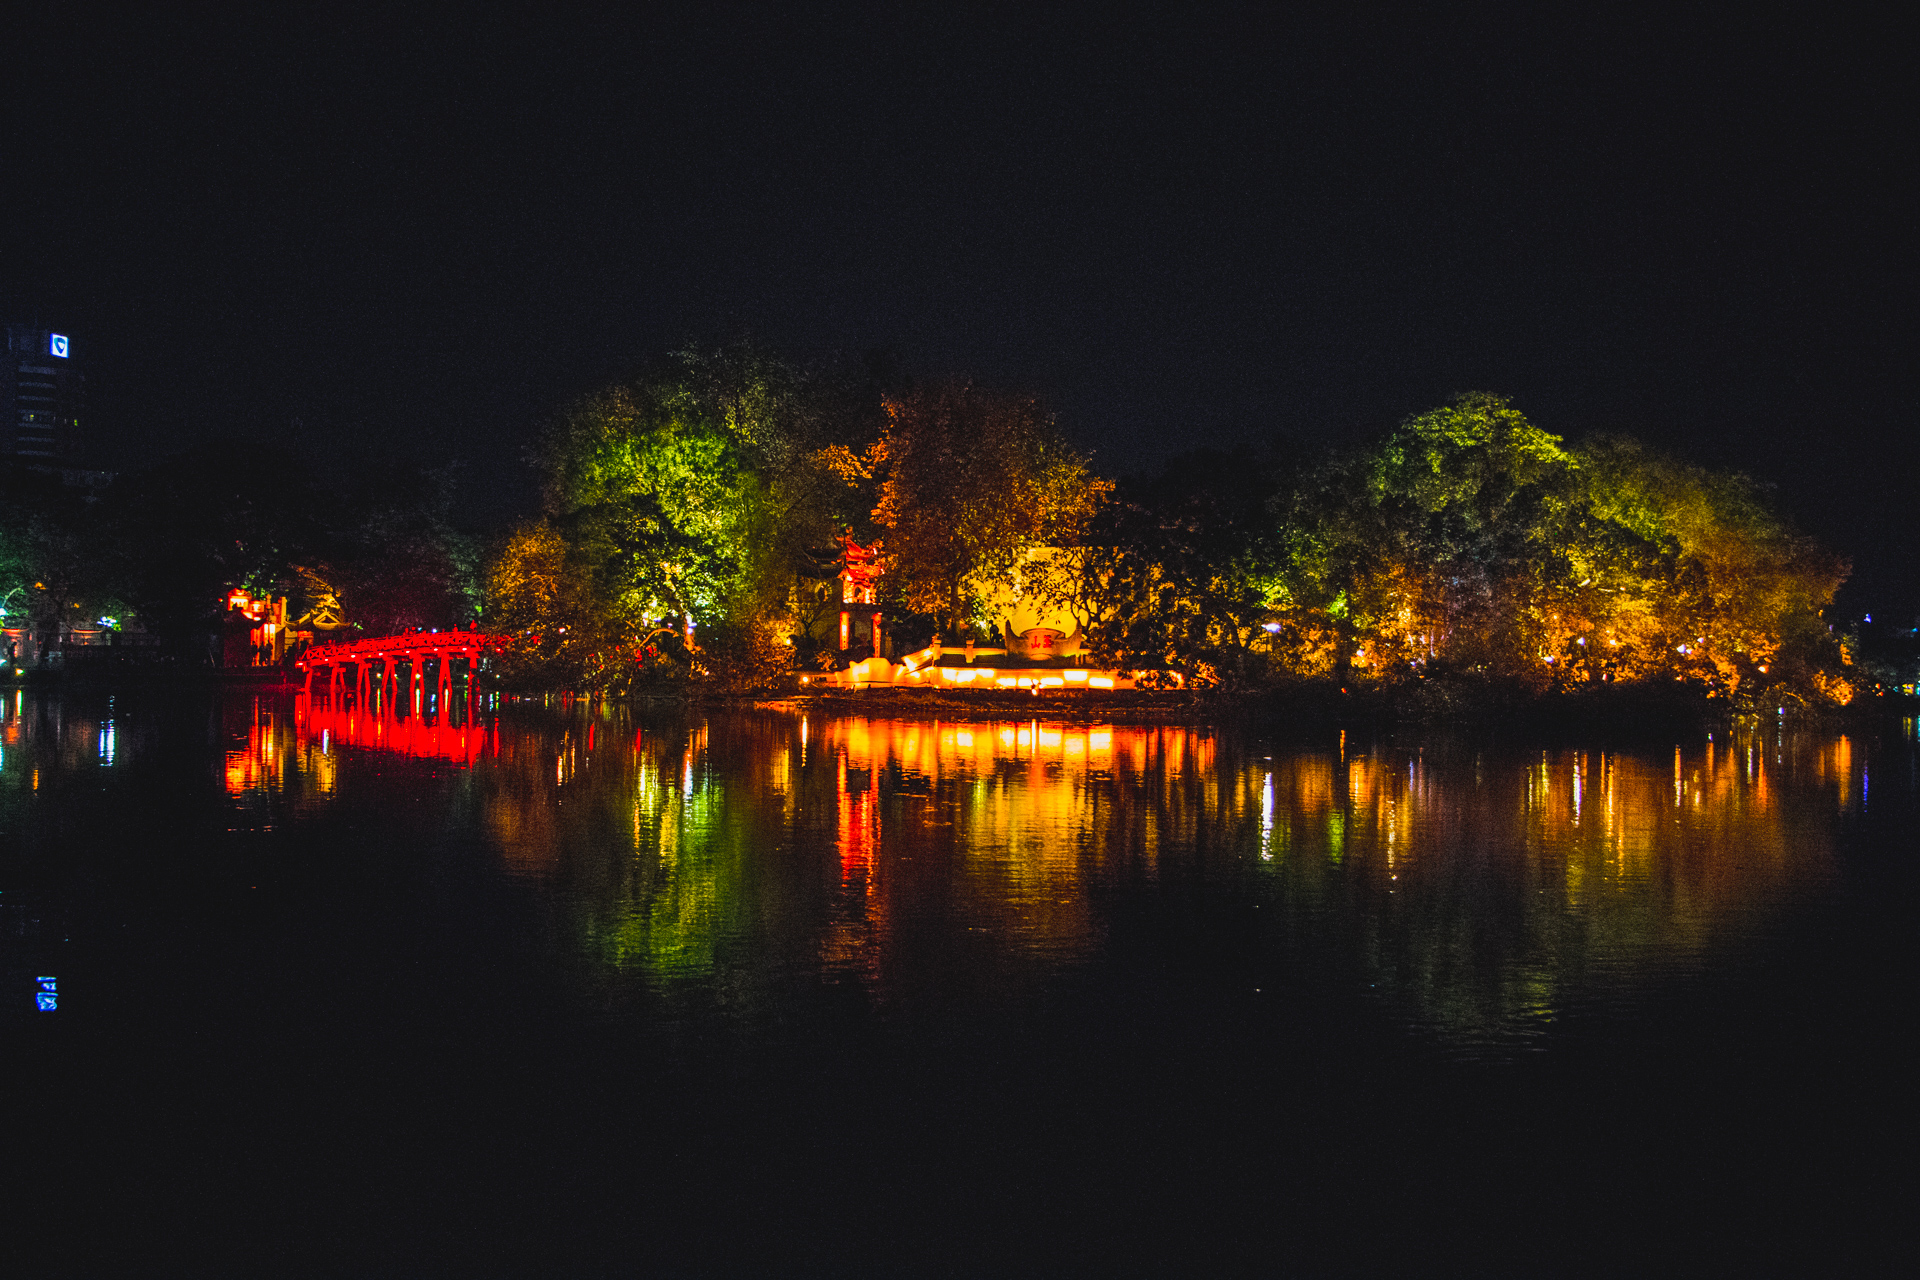 The Huc Bridge bridge Hanoi Hoan Kiem Lake at night